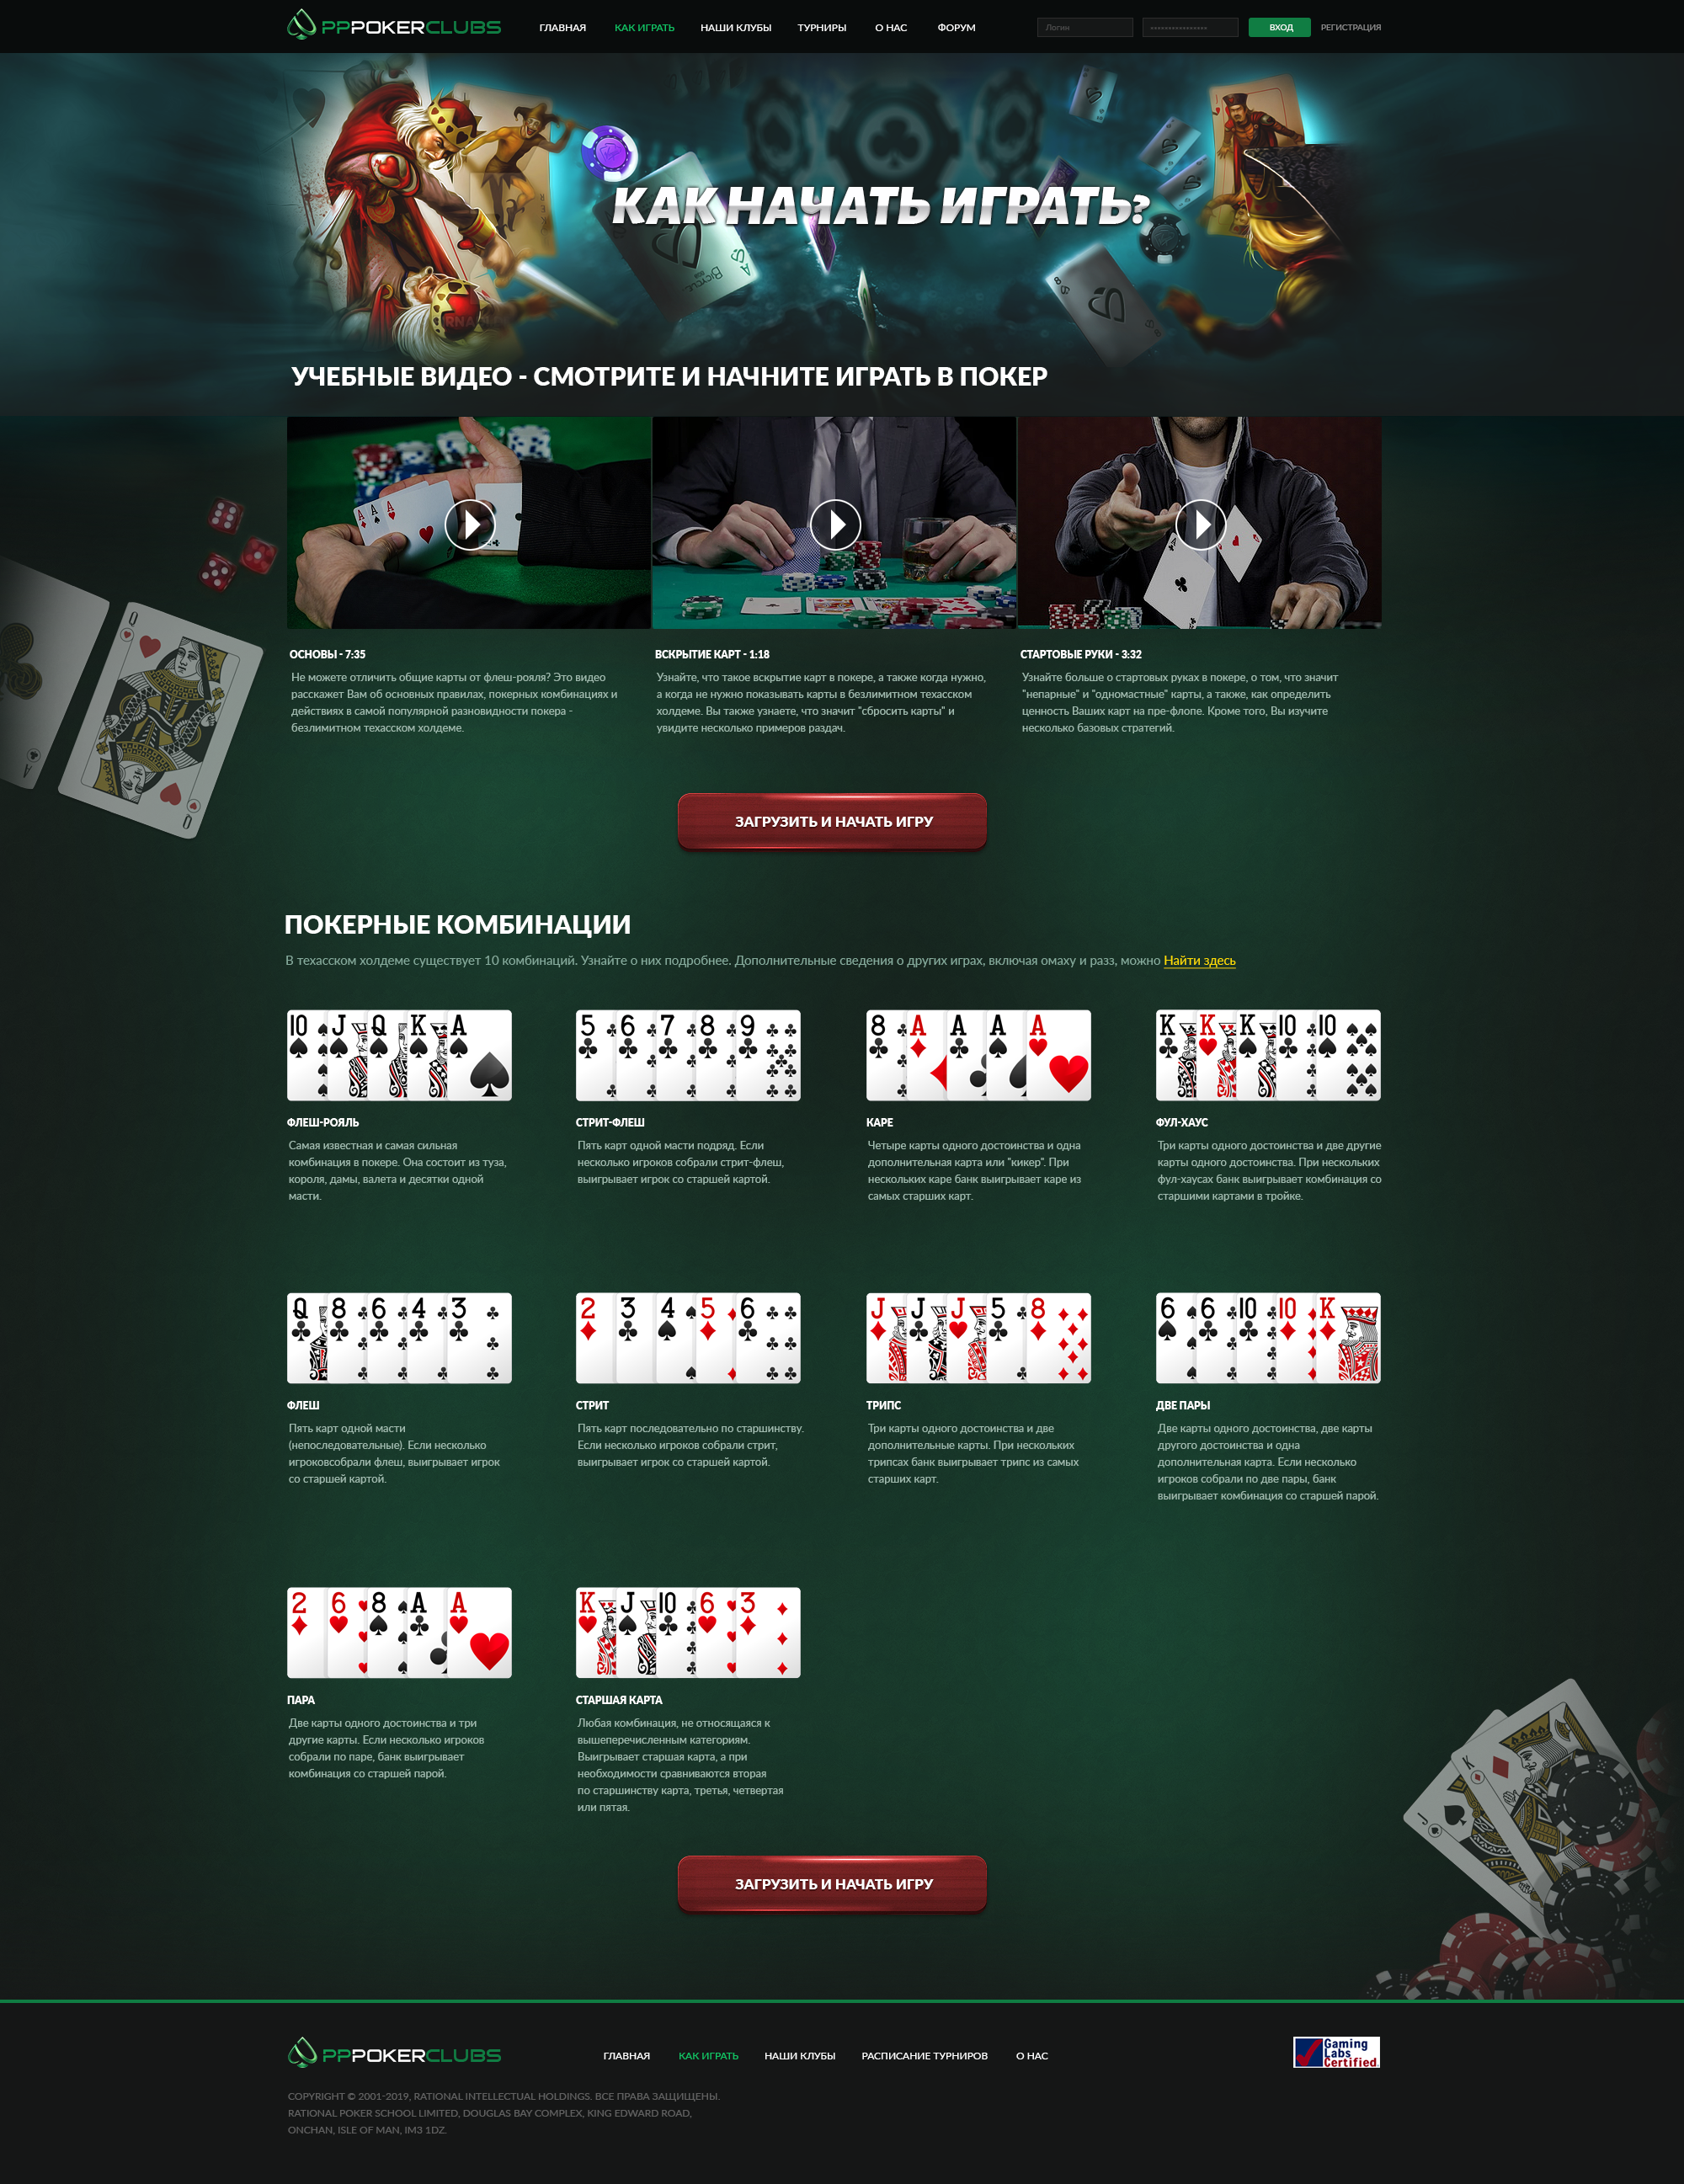 PPWC http://koticash.ru/poker/index.html